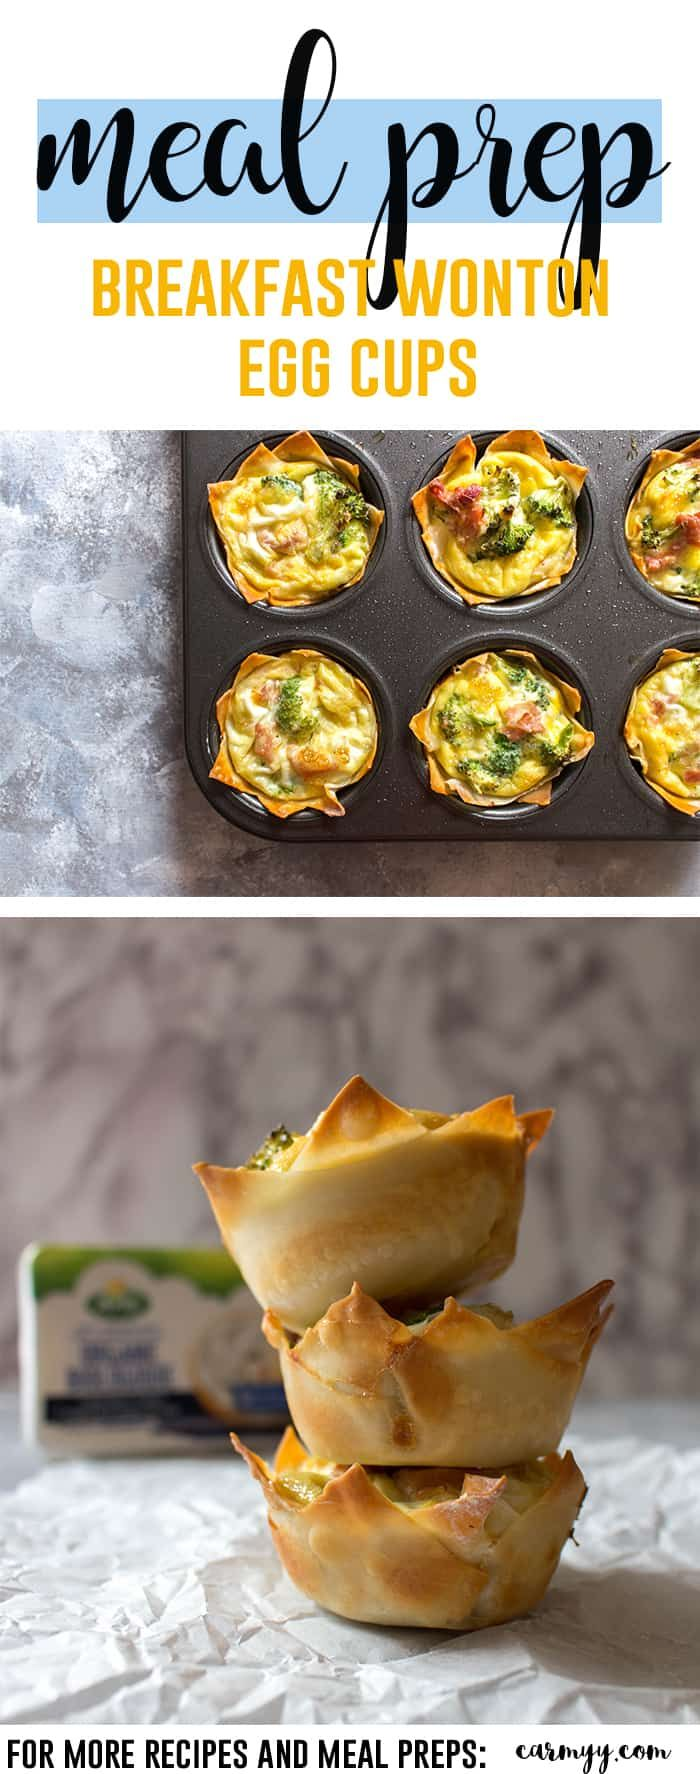 Need a breakfast meal prep idea? Why not try this delicious and fun breakfast wonton egg cups? via @runcarmyrun